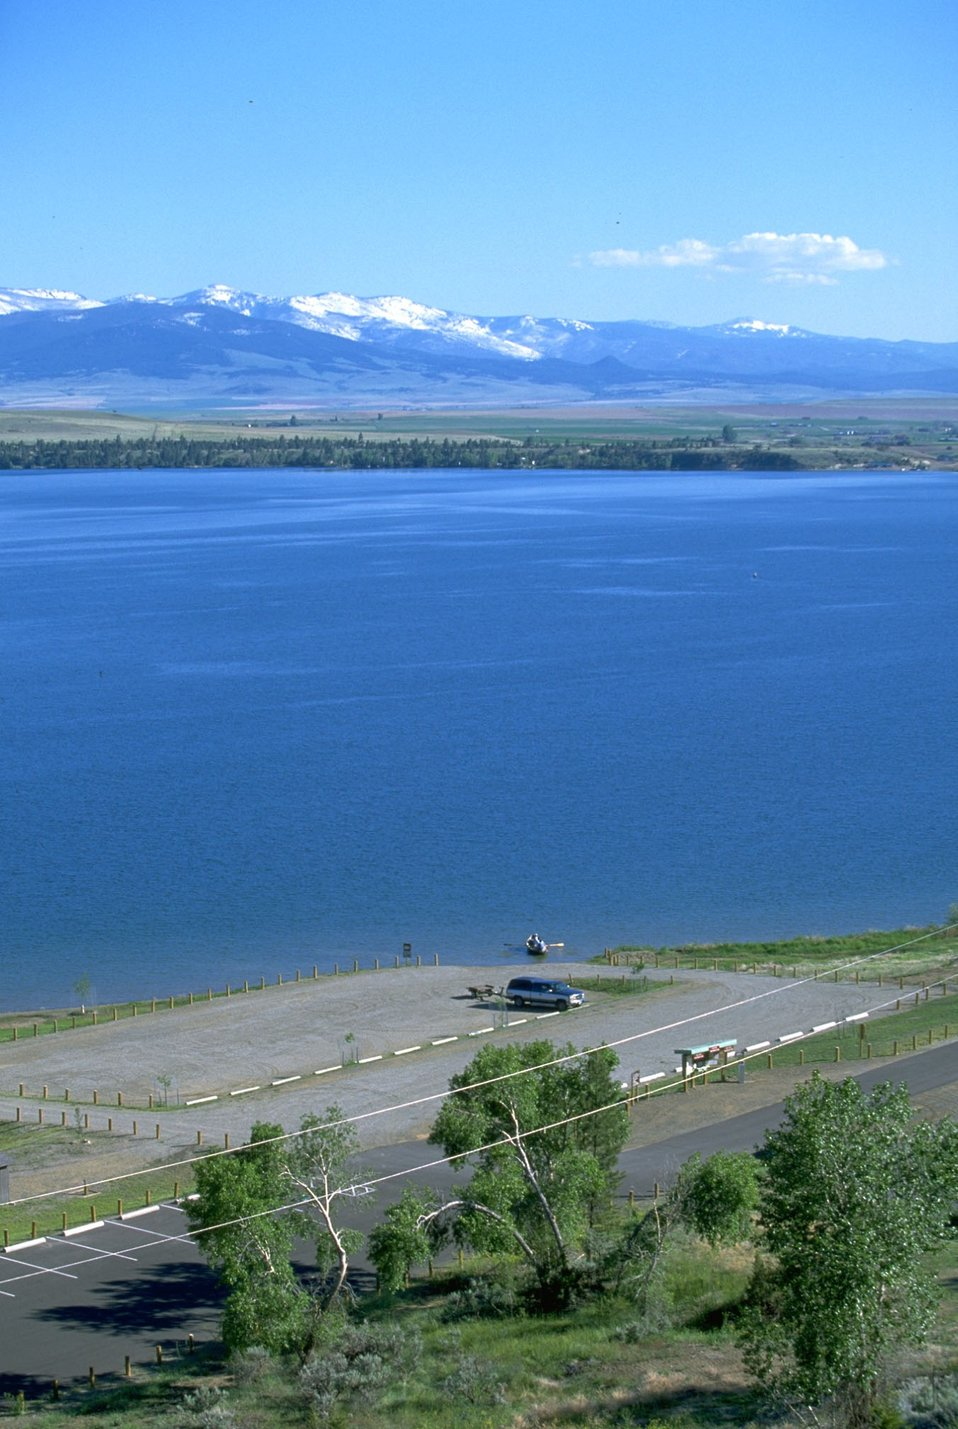 Scenic view of snow-capped mountains, Hauser Lake, and the parking lot of Clark's Bay Day Use Area